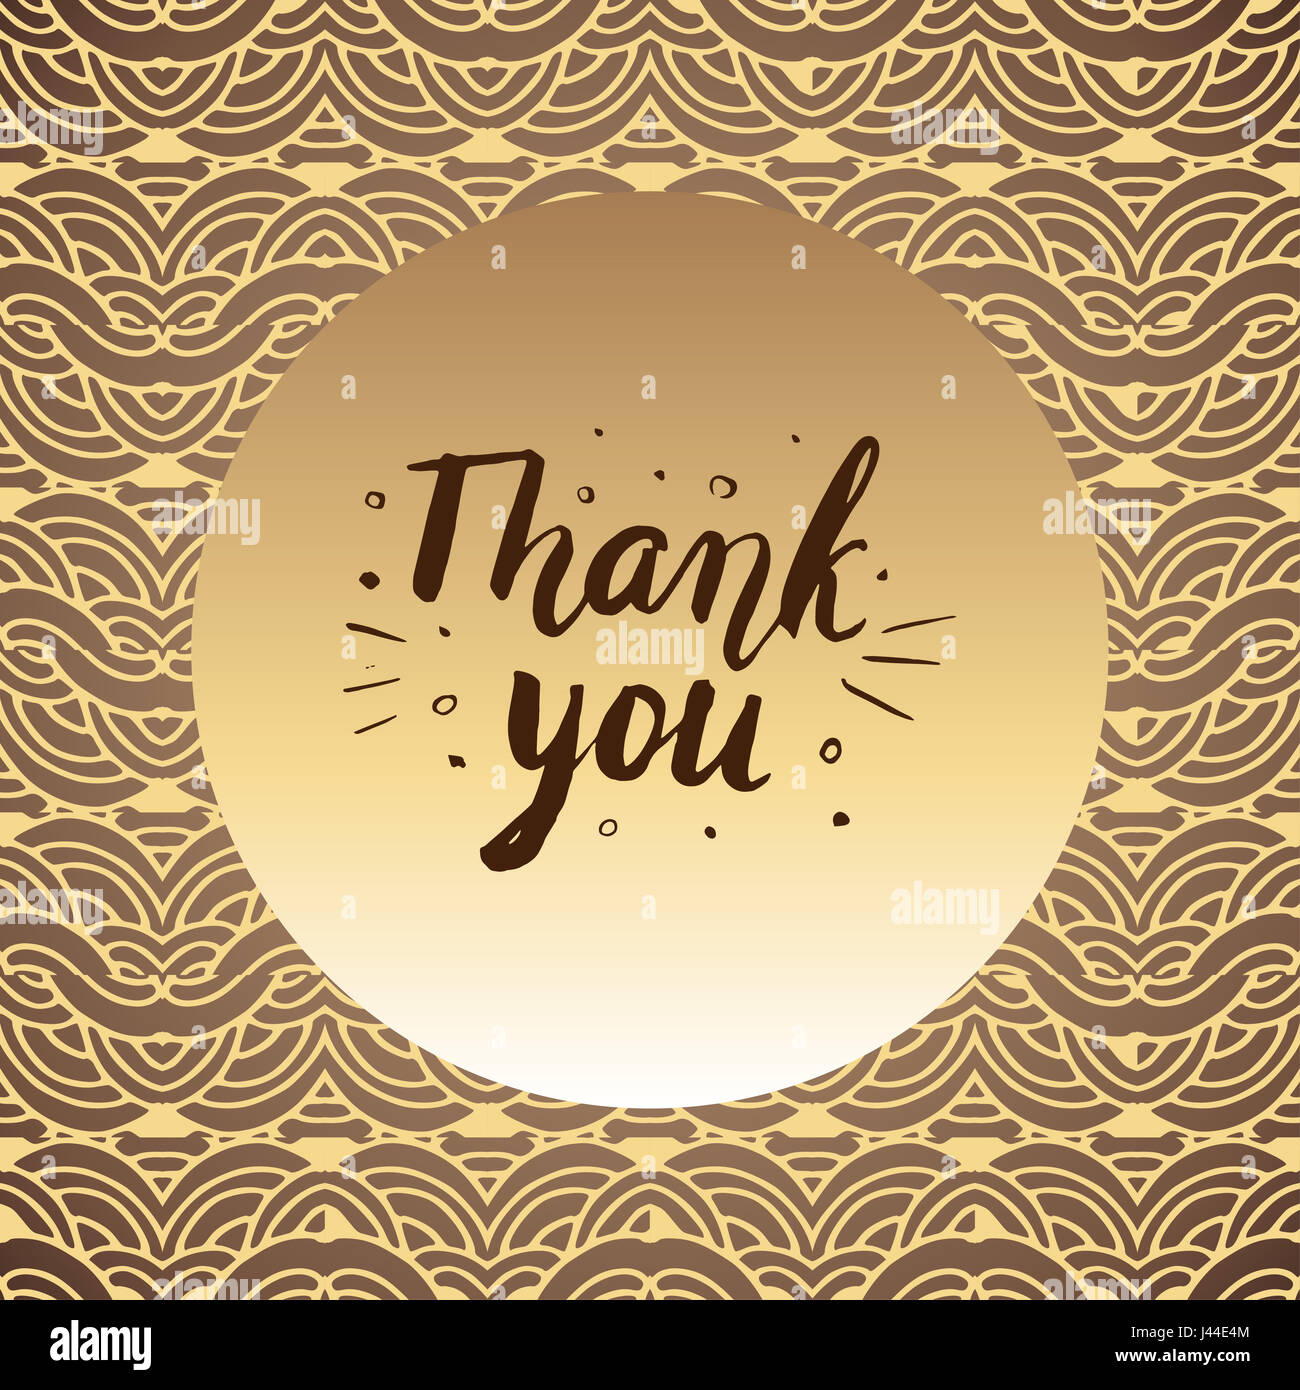 Thank You. Hand drawn lettering. Can be used for card. Illustration. - Stock Image